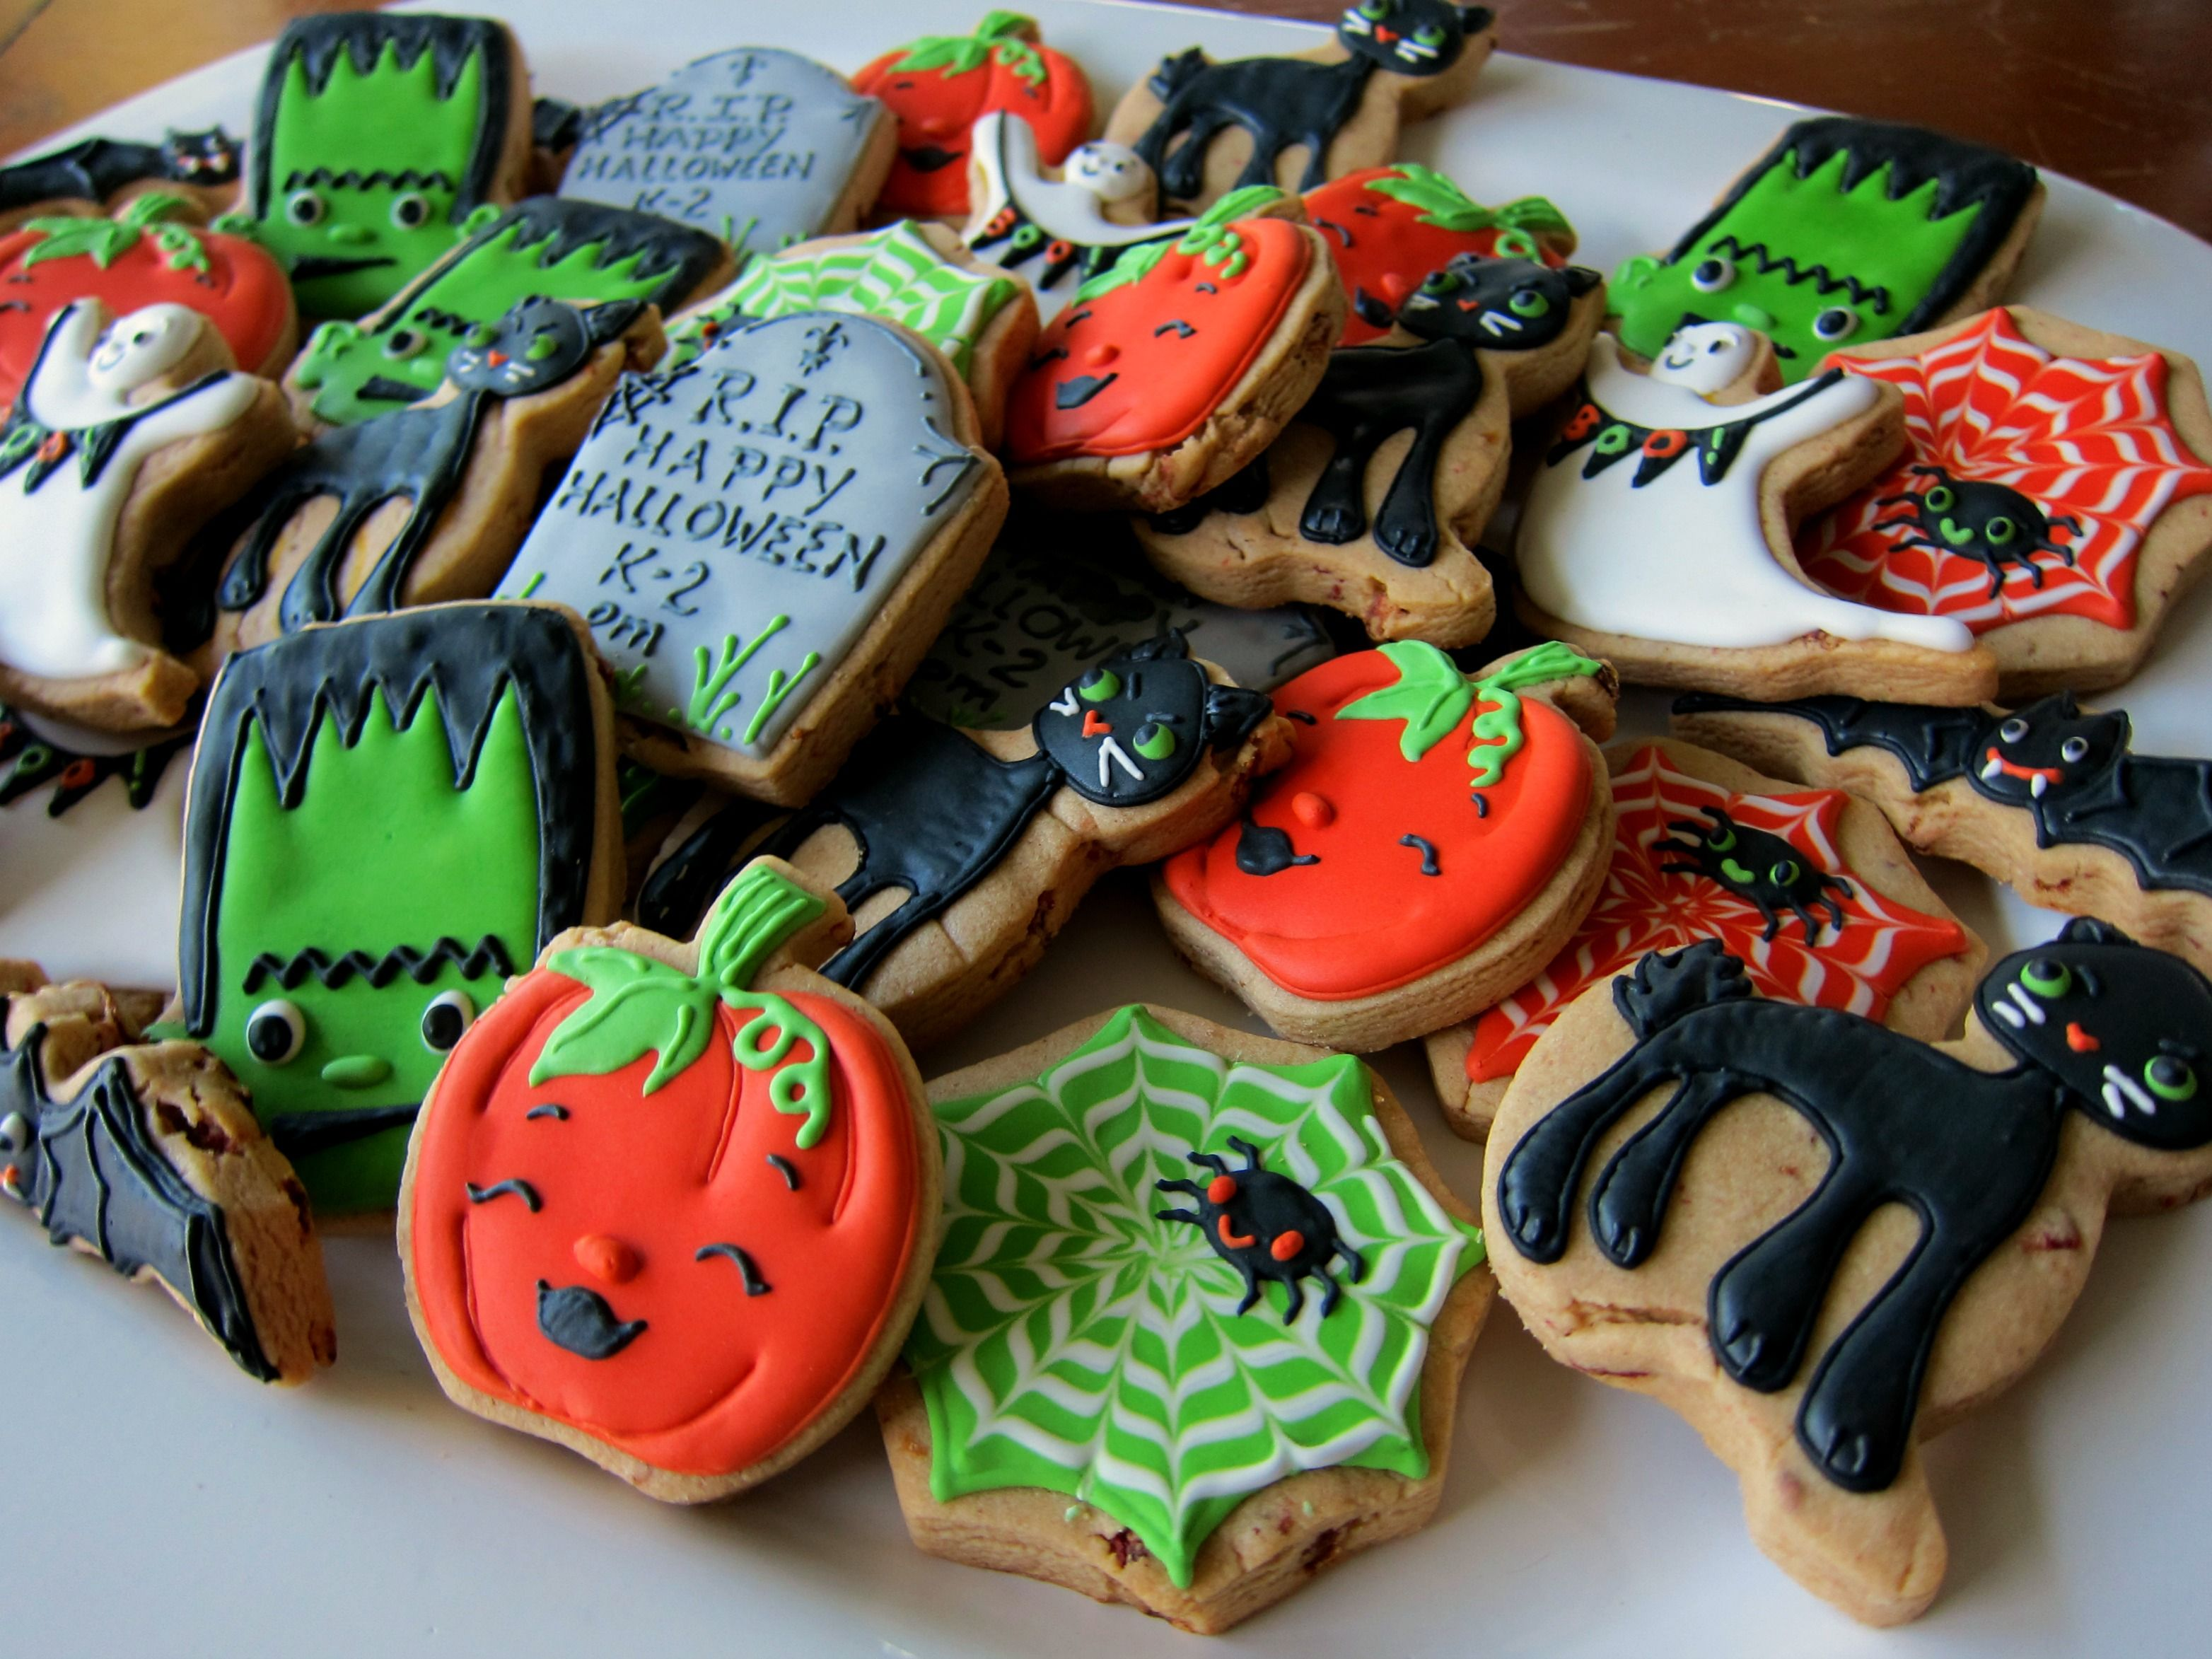 Halloween Decorated Cookies cookies Pinterest Halloween foods - Halloween Decorated Cookies